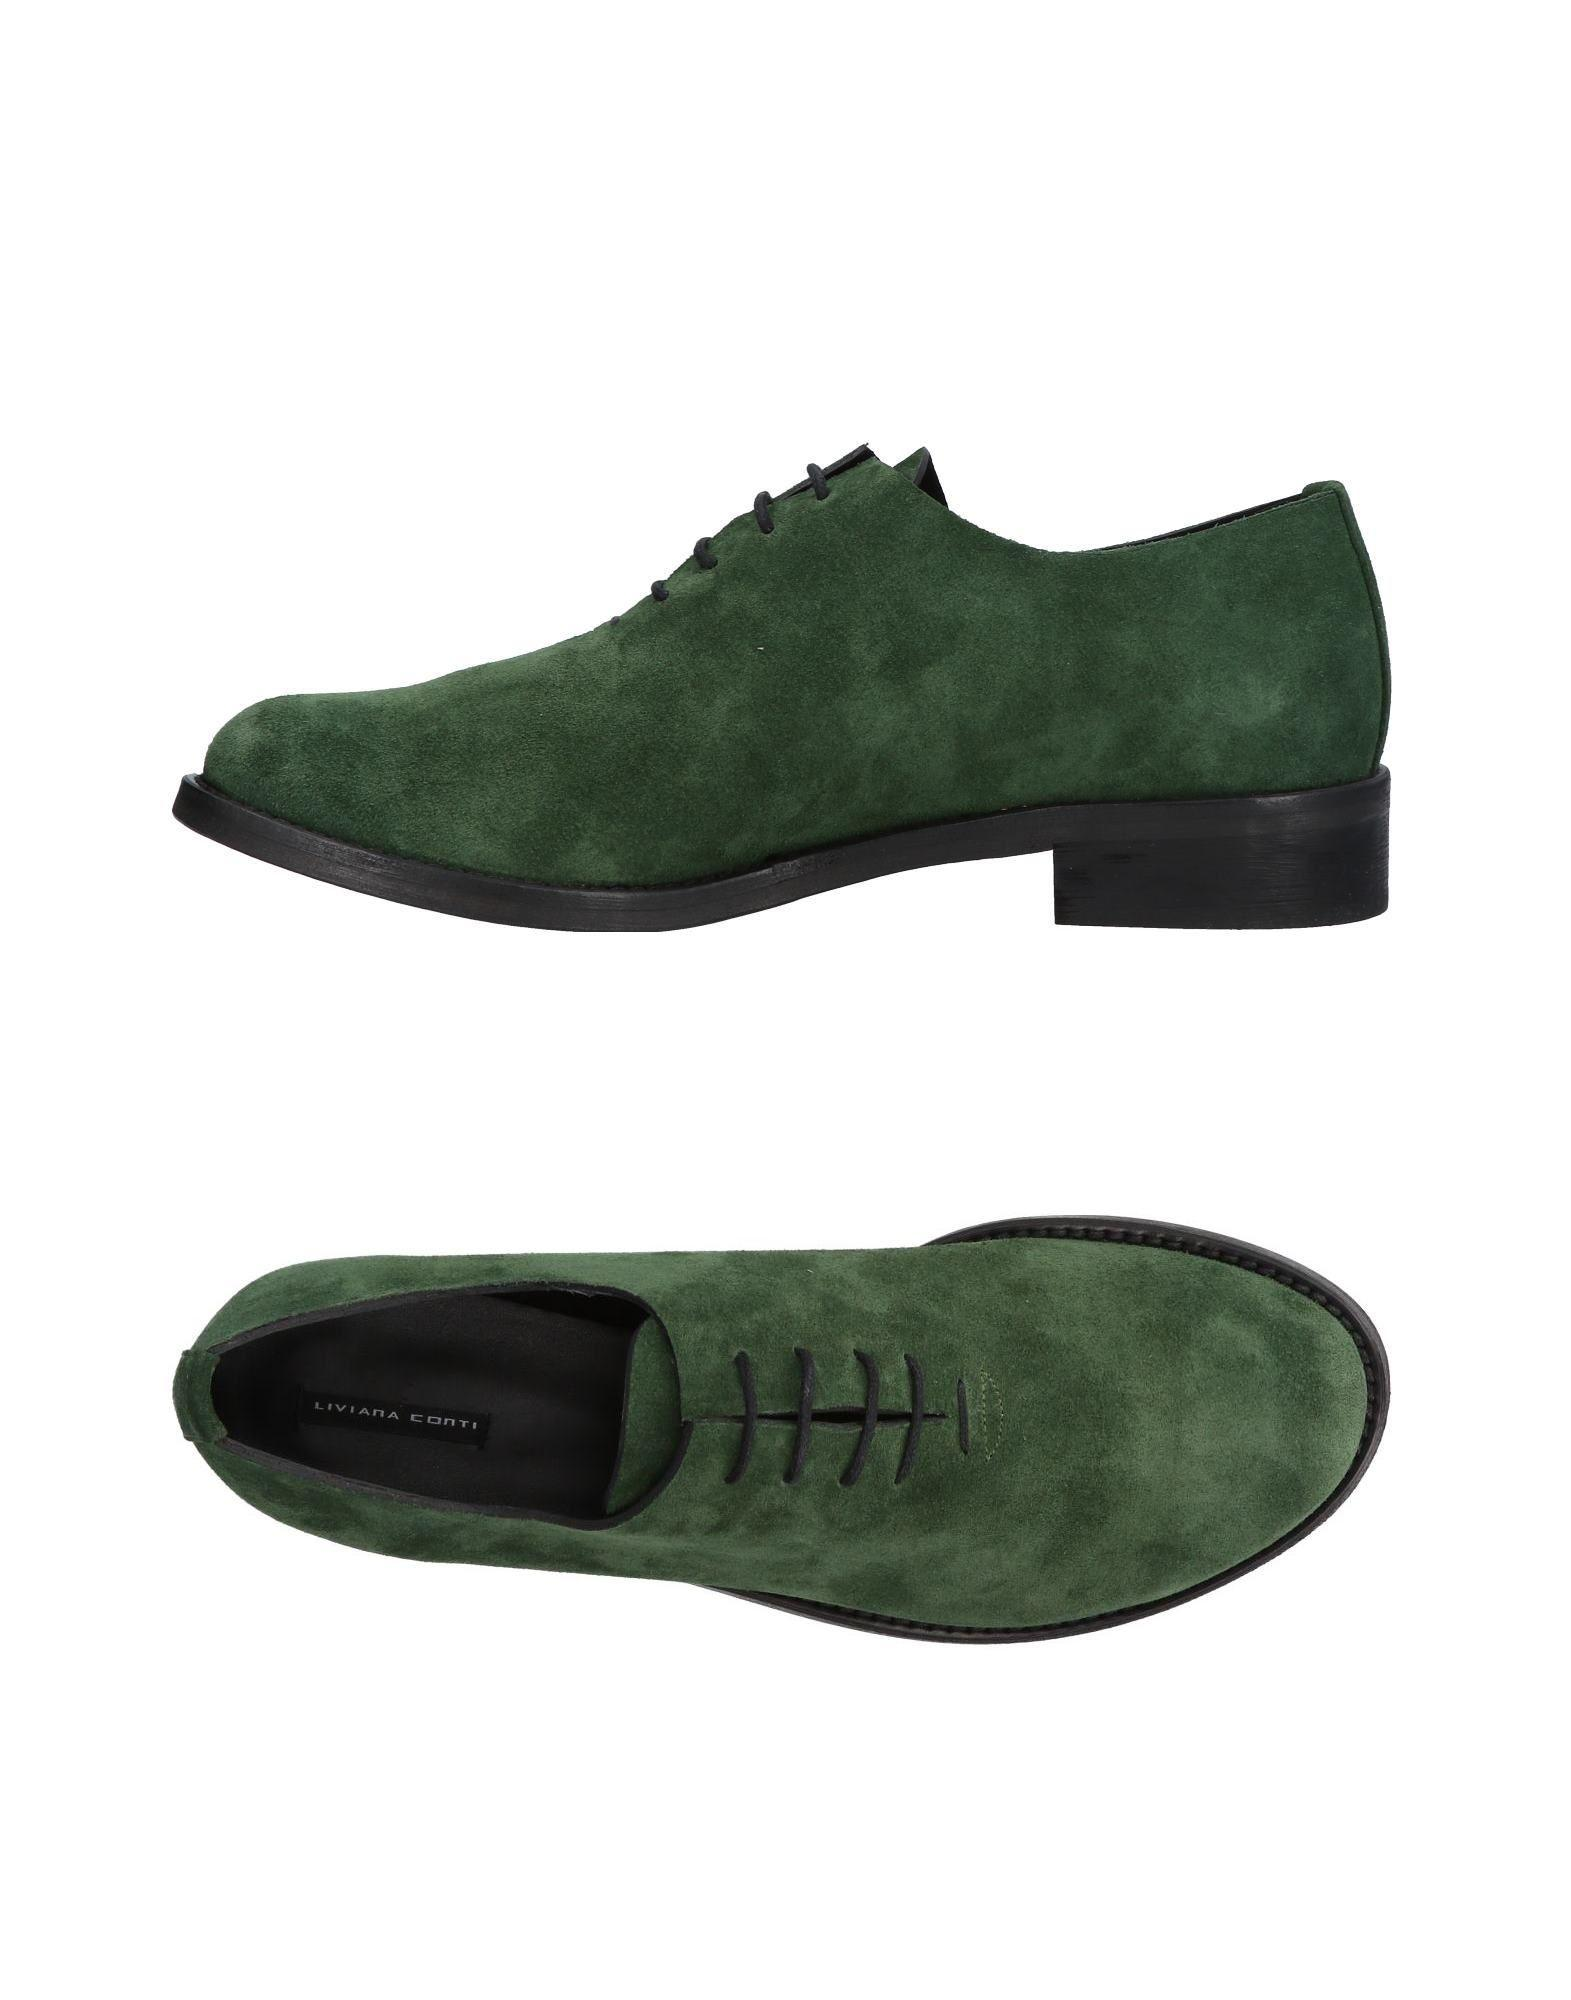 Liviana Conti Laced Shoes In Military Green